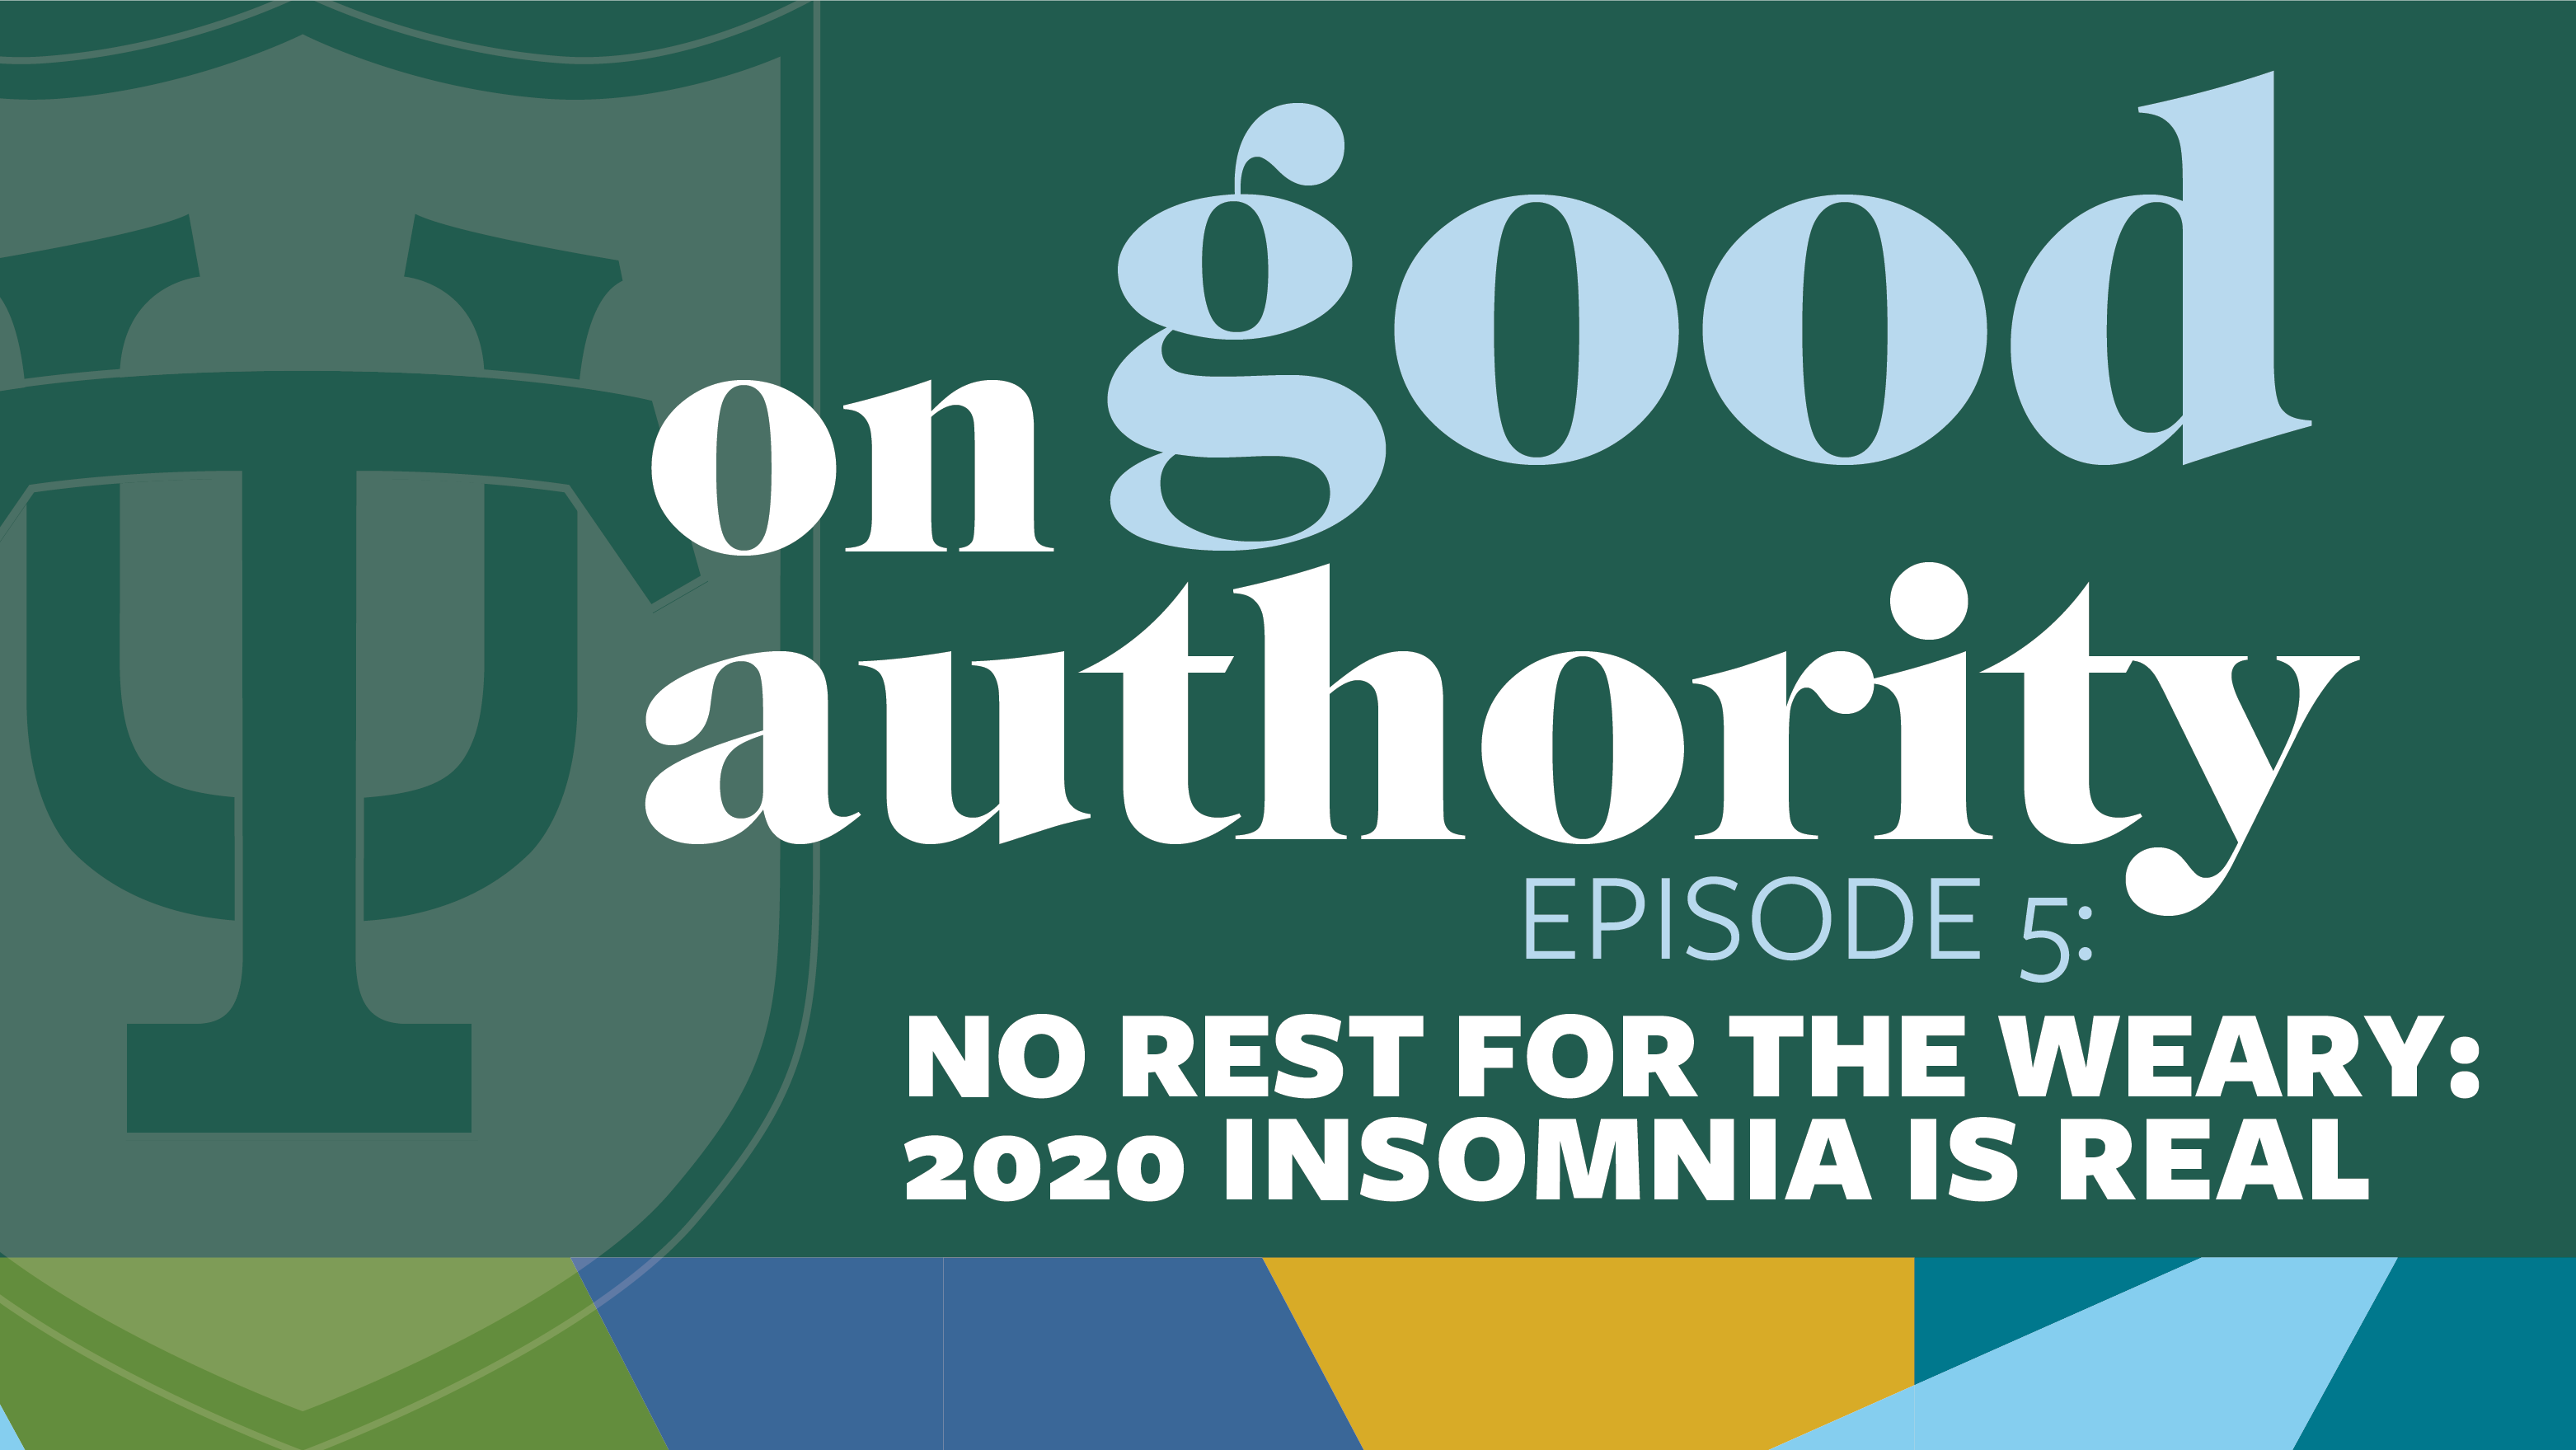 Episode 5: No Rest for the Weary: 2020 Insomnia is Real ...